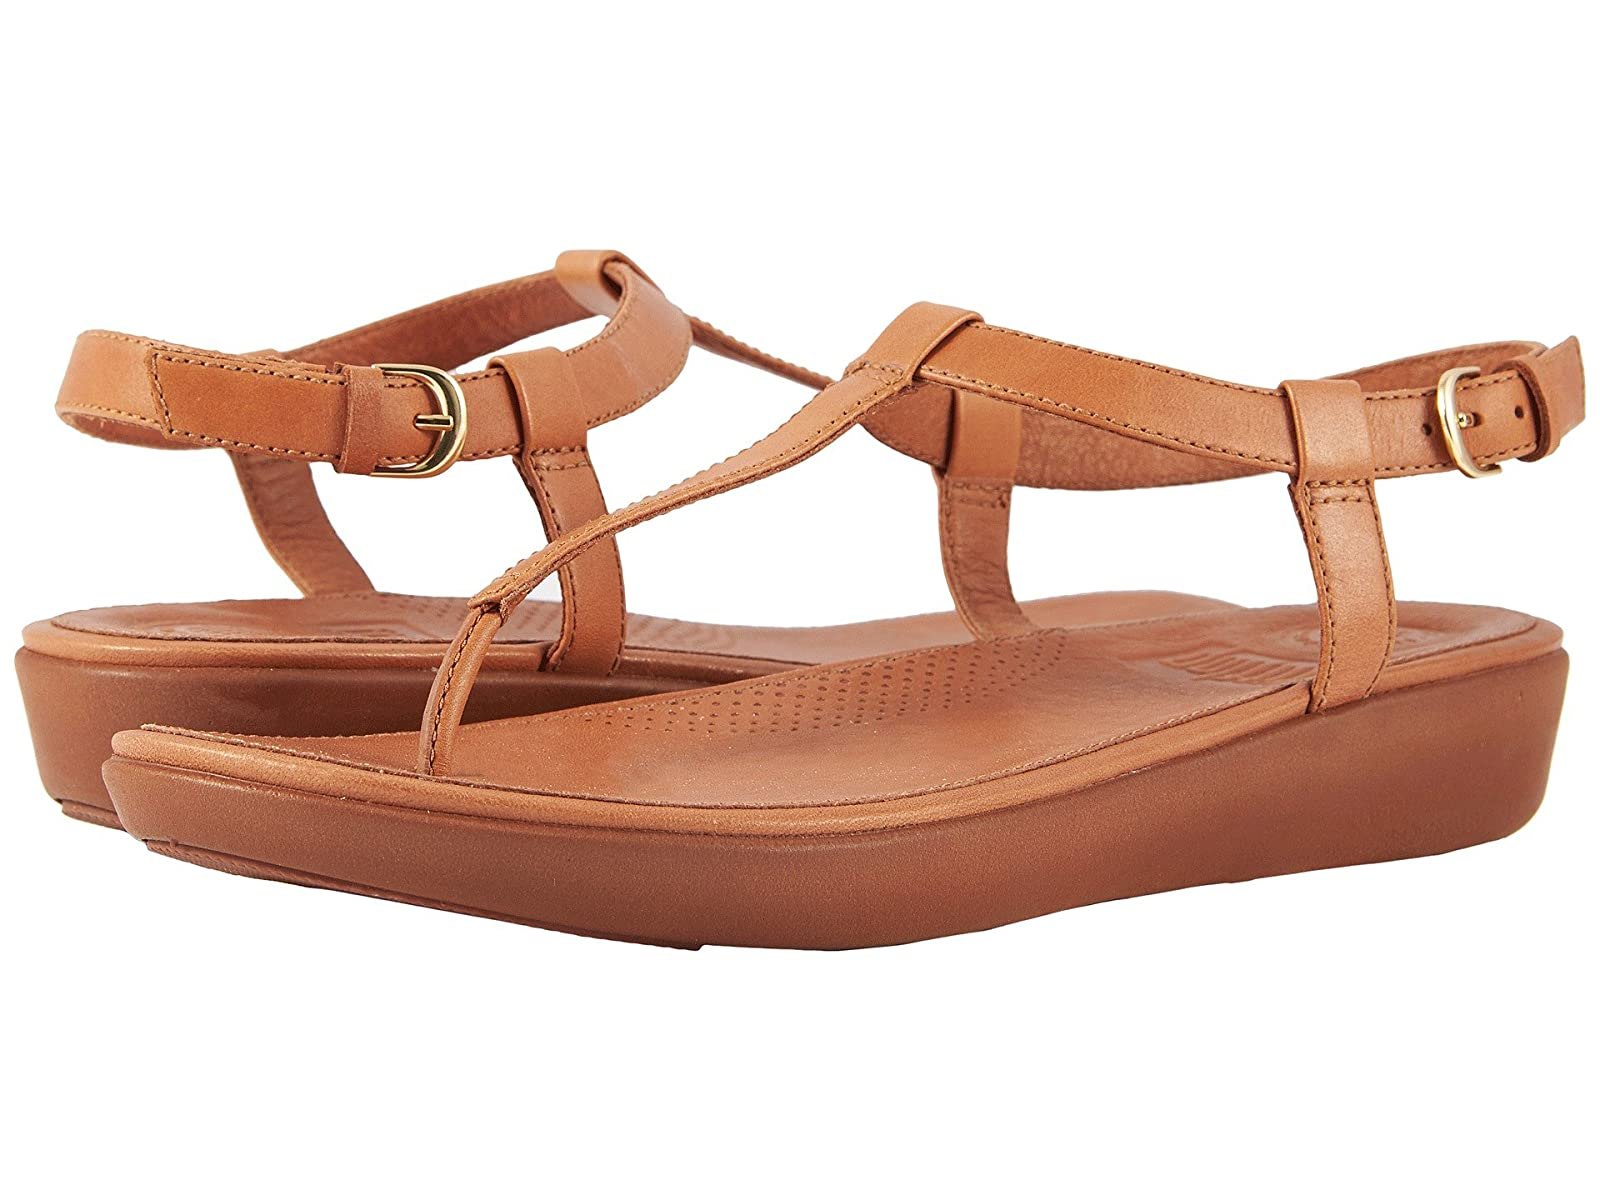 FitFlop Tia Toe Thong SandalsAtmospheric grades have affordable shoes